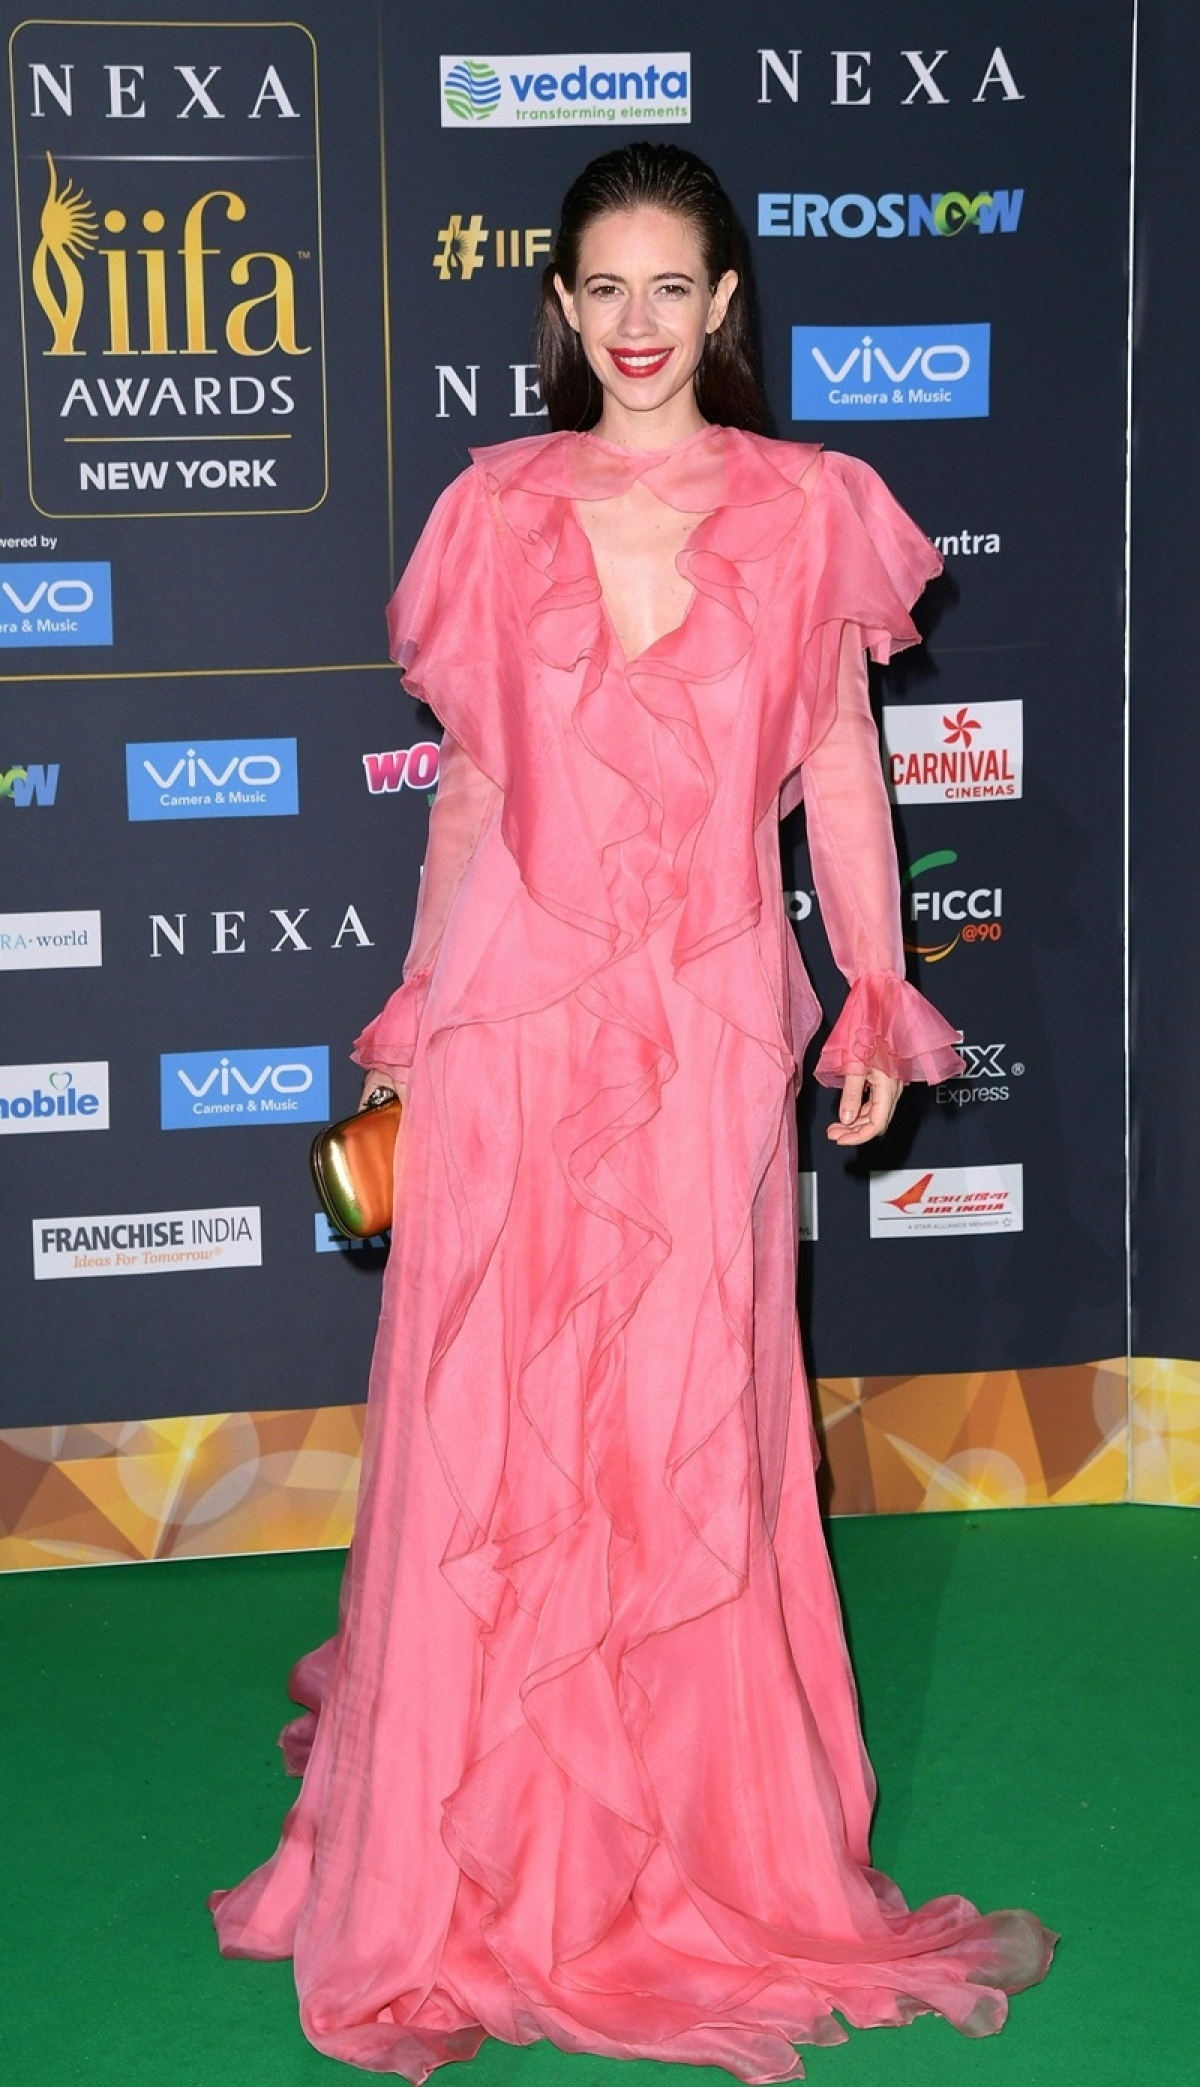 Bollywood actress Kalki Koechlin arrives for the IIFA Awards July 15, 2017 at the MetLife Stadium in East Rutherford, New Jersey during the 18th International Indian Film Academy (IIFA) Festival. / AFP PHOTO / ANGELA WEISS